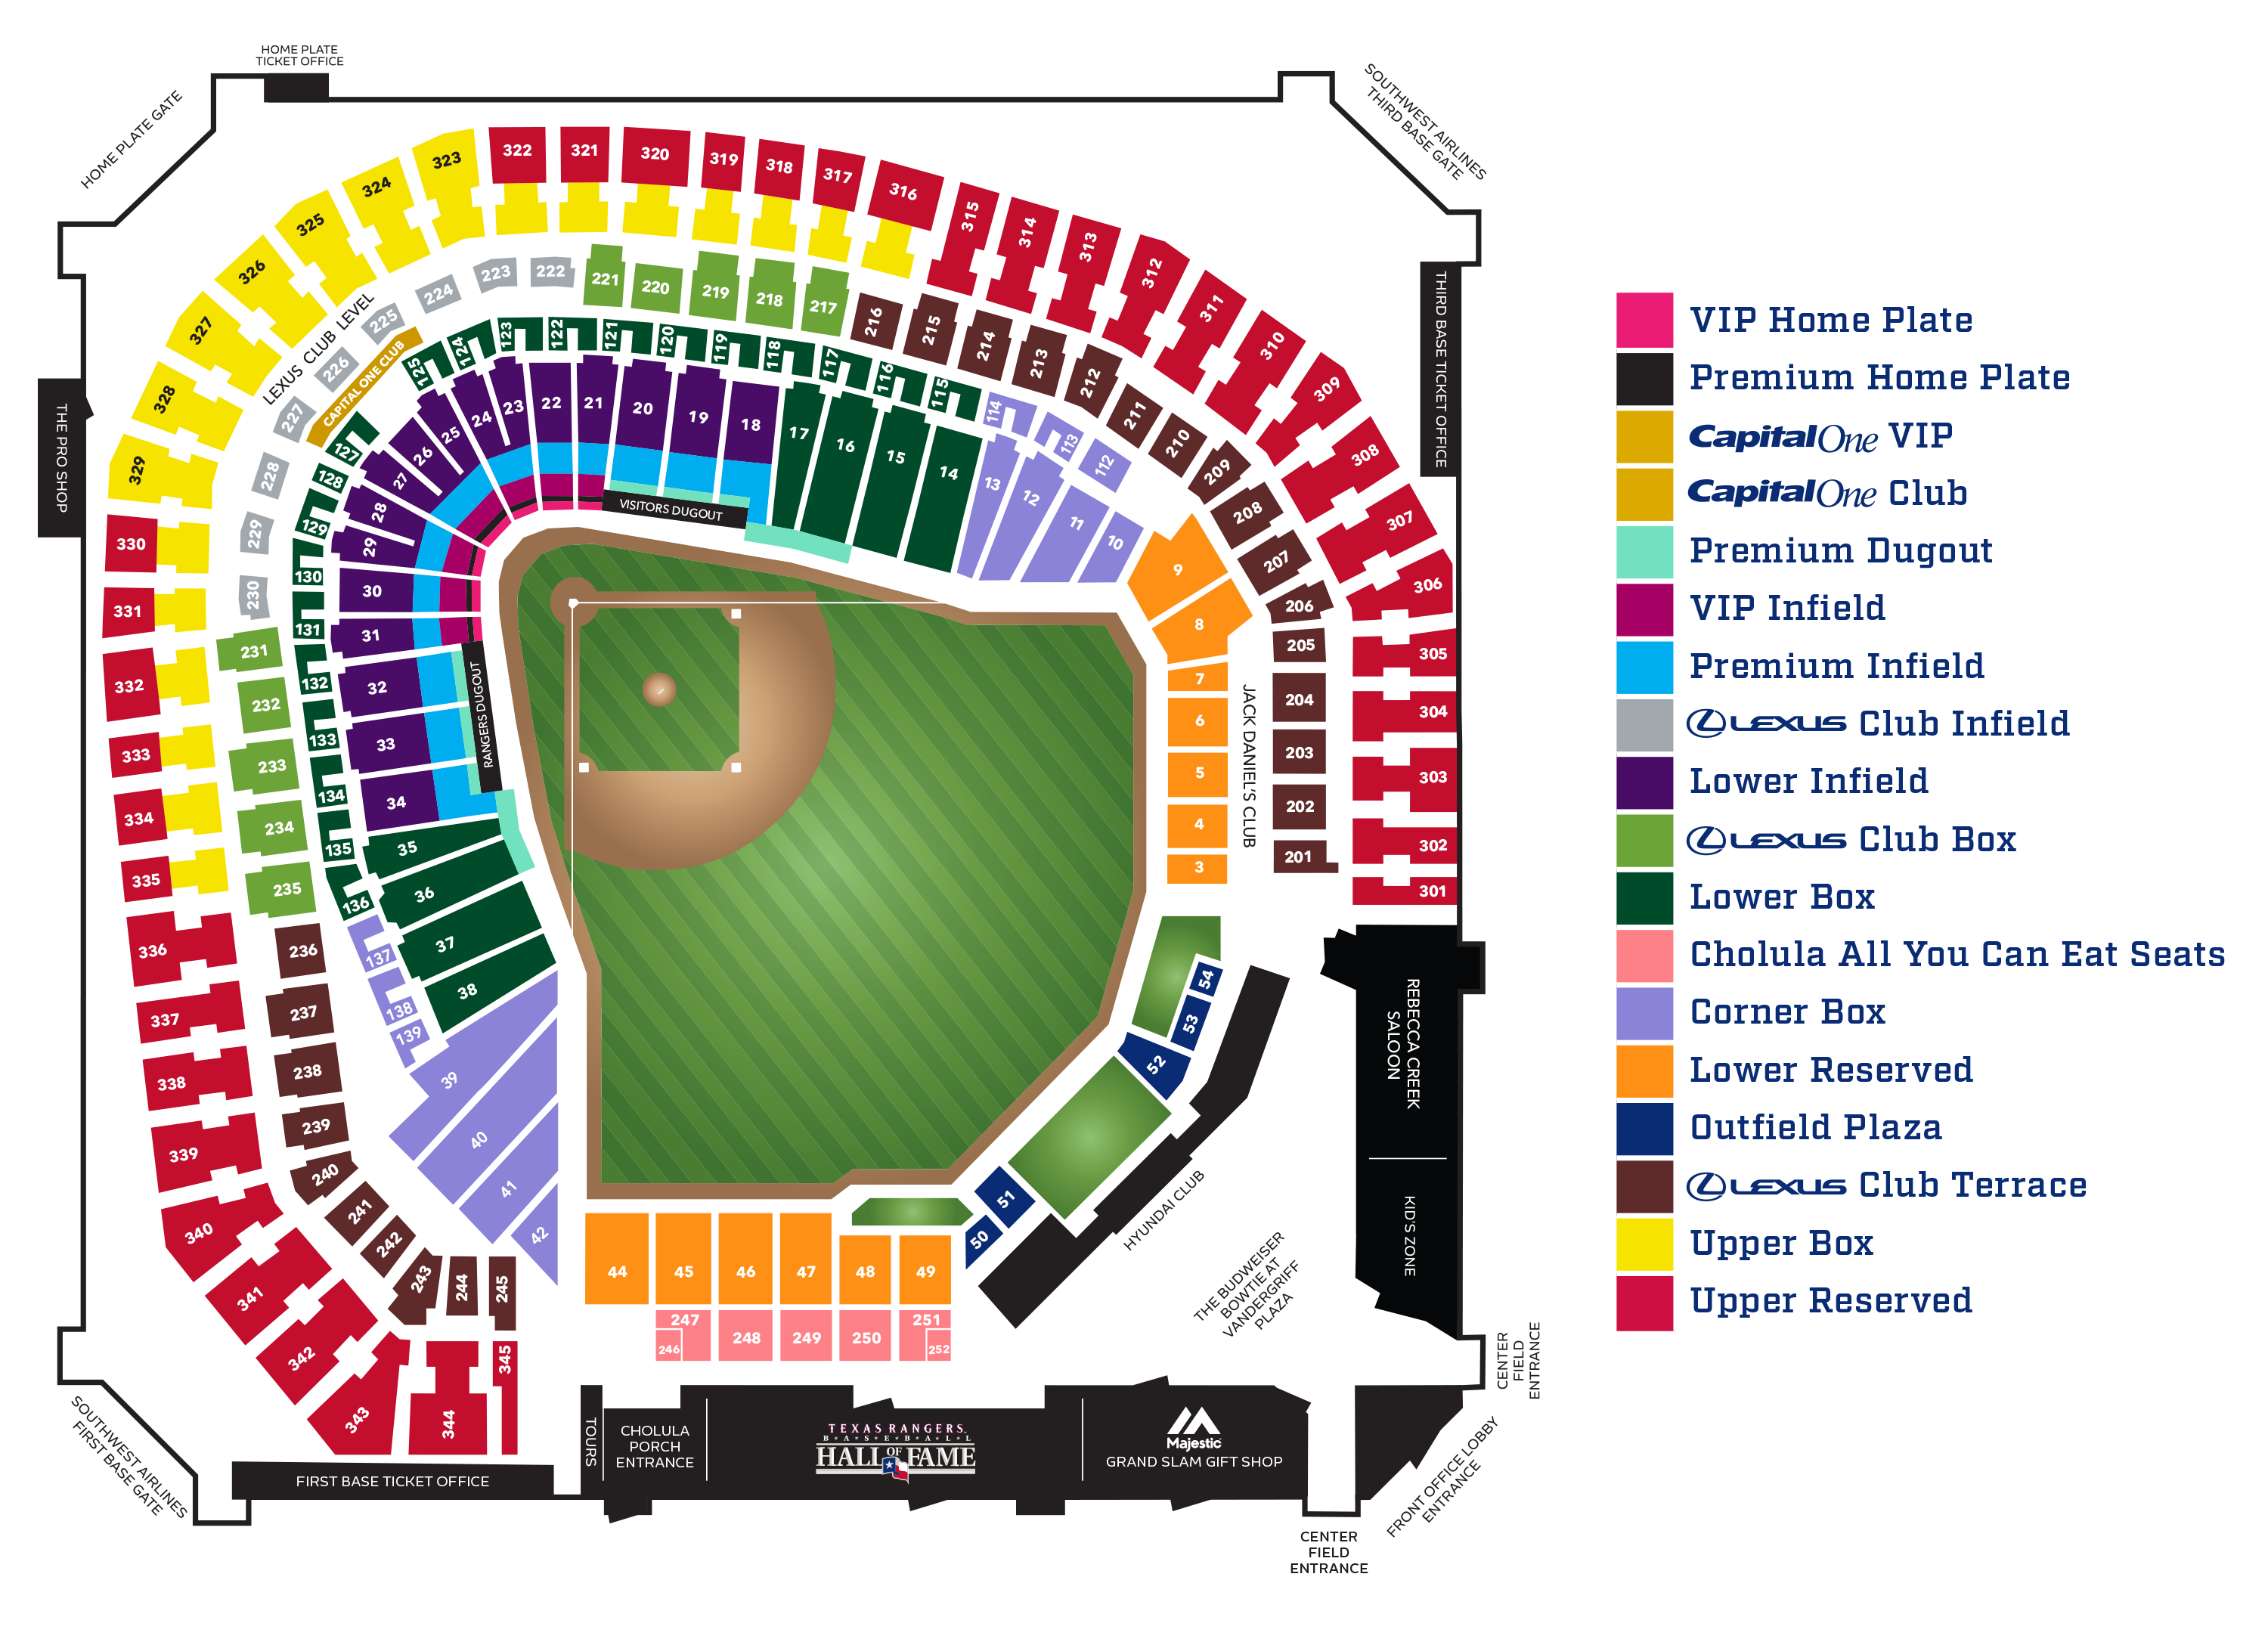 Globe life seating chart globe life park seating chart for party